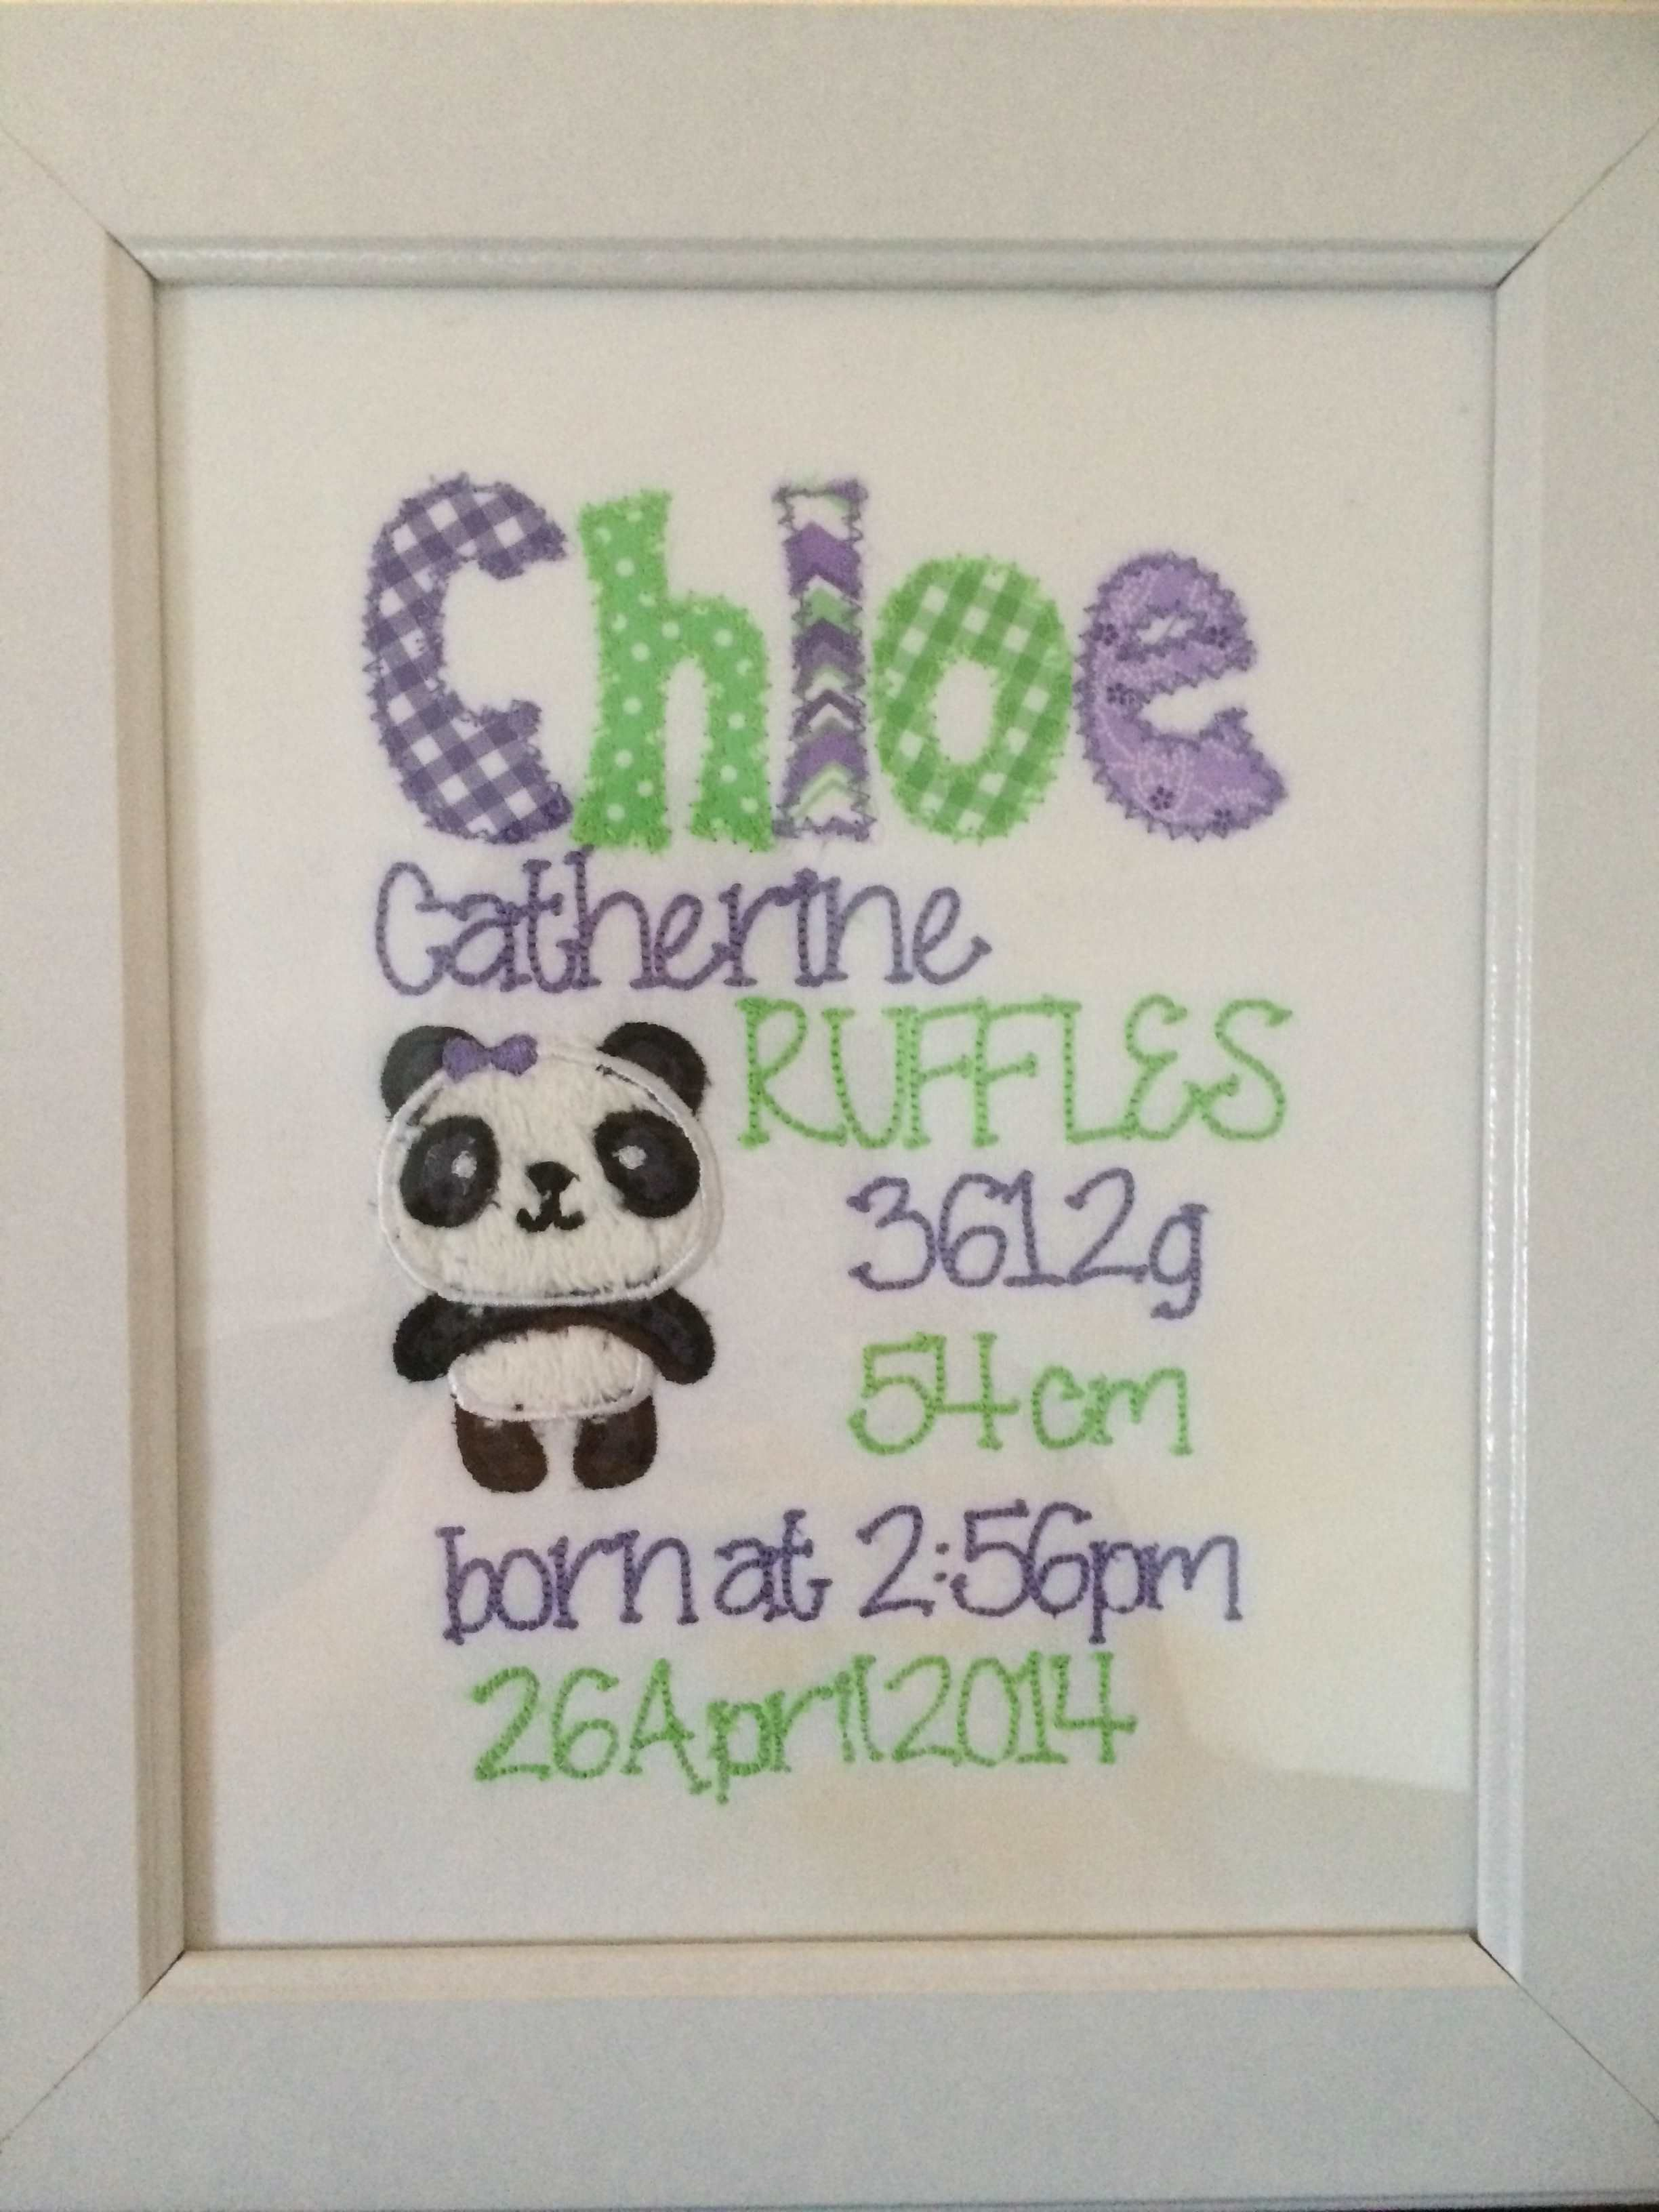 Panda new baby gift framed embroidered birth announcement panda new baby gift framed embroidered birth announcement personalized purple cat embroidery 40 negle Choice Image